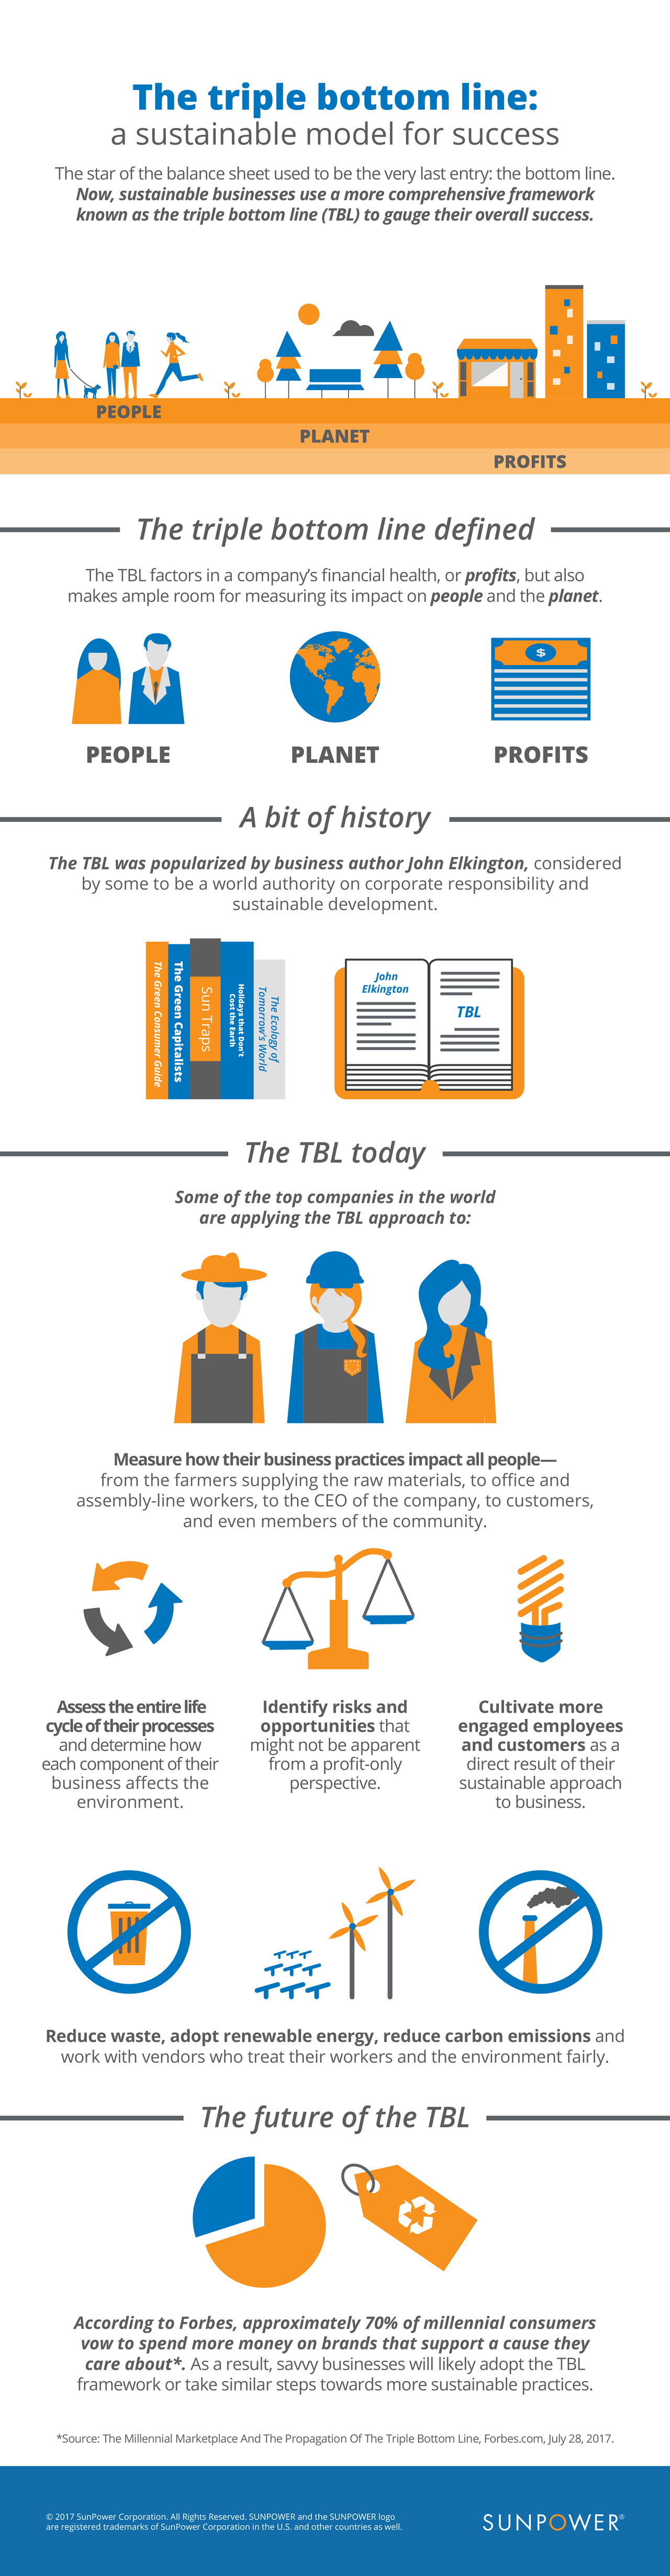 The triple bottom line (TBL) infographic